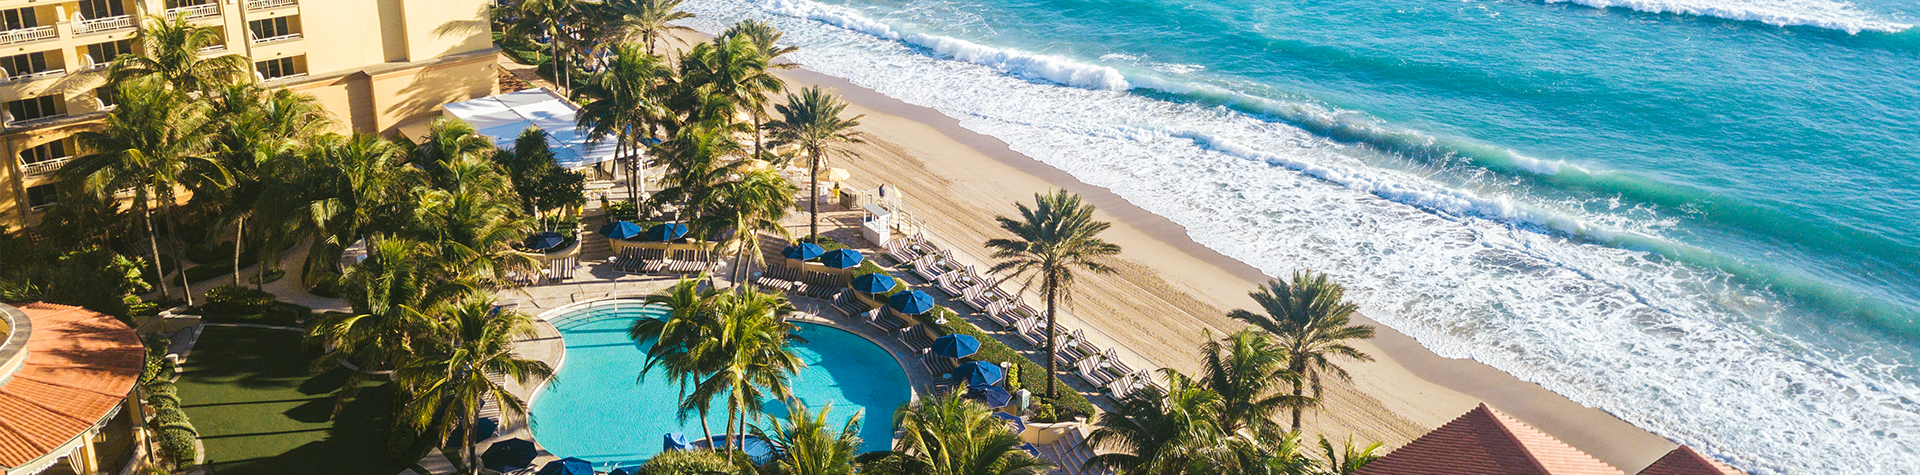 Fine Hotels Resorts Bookings American Express Travel